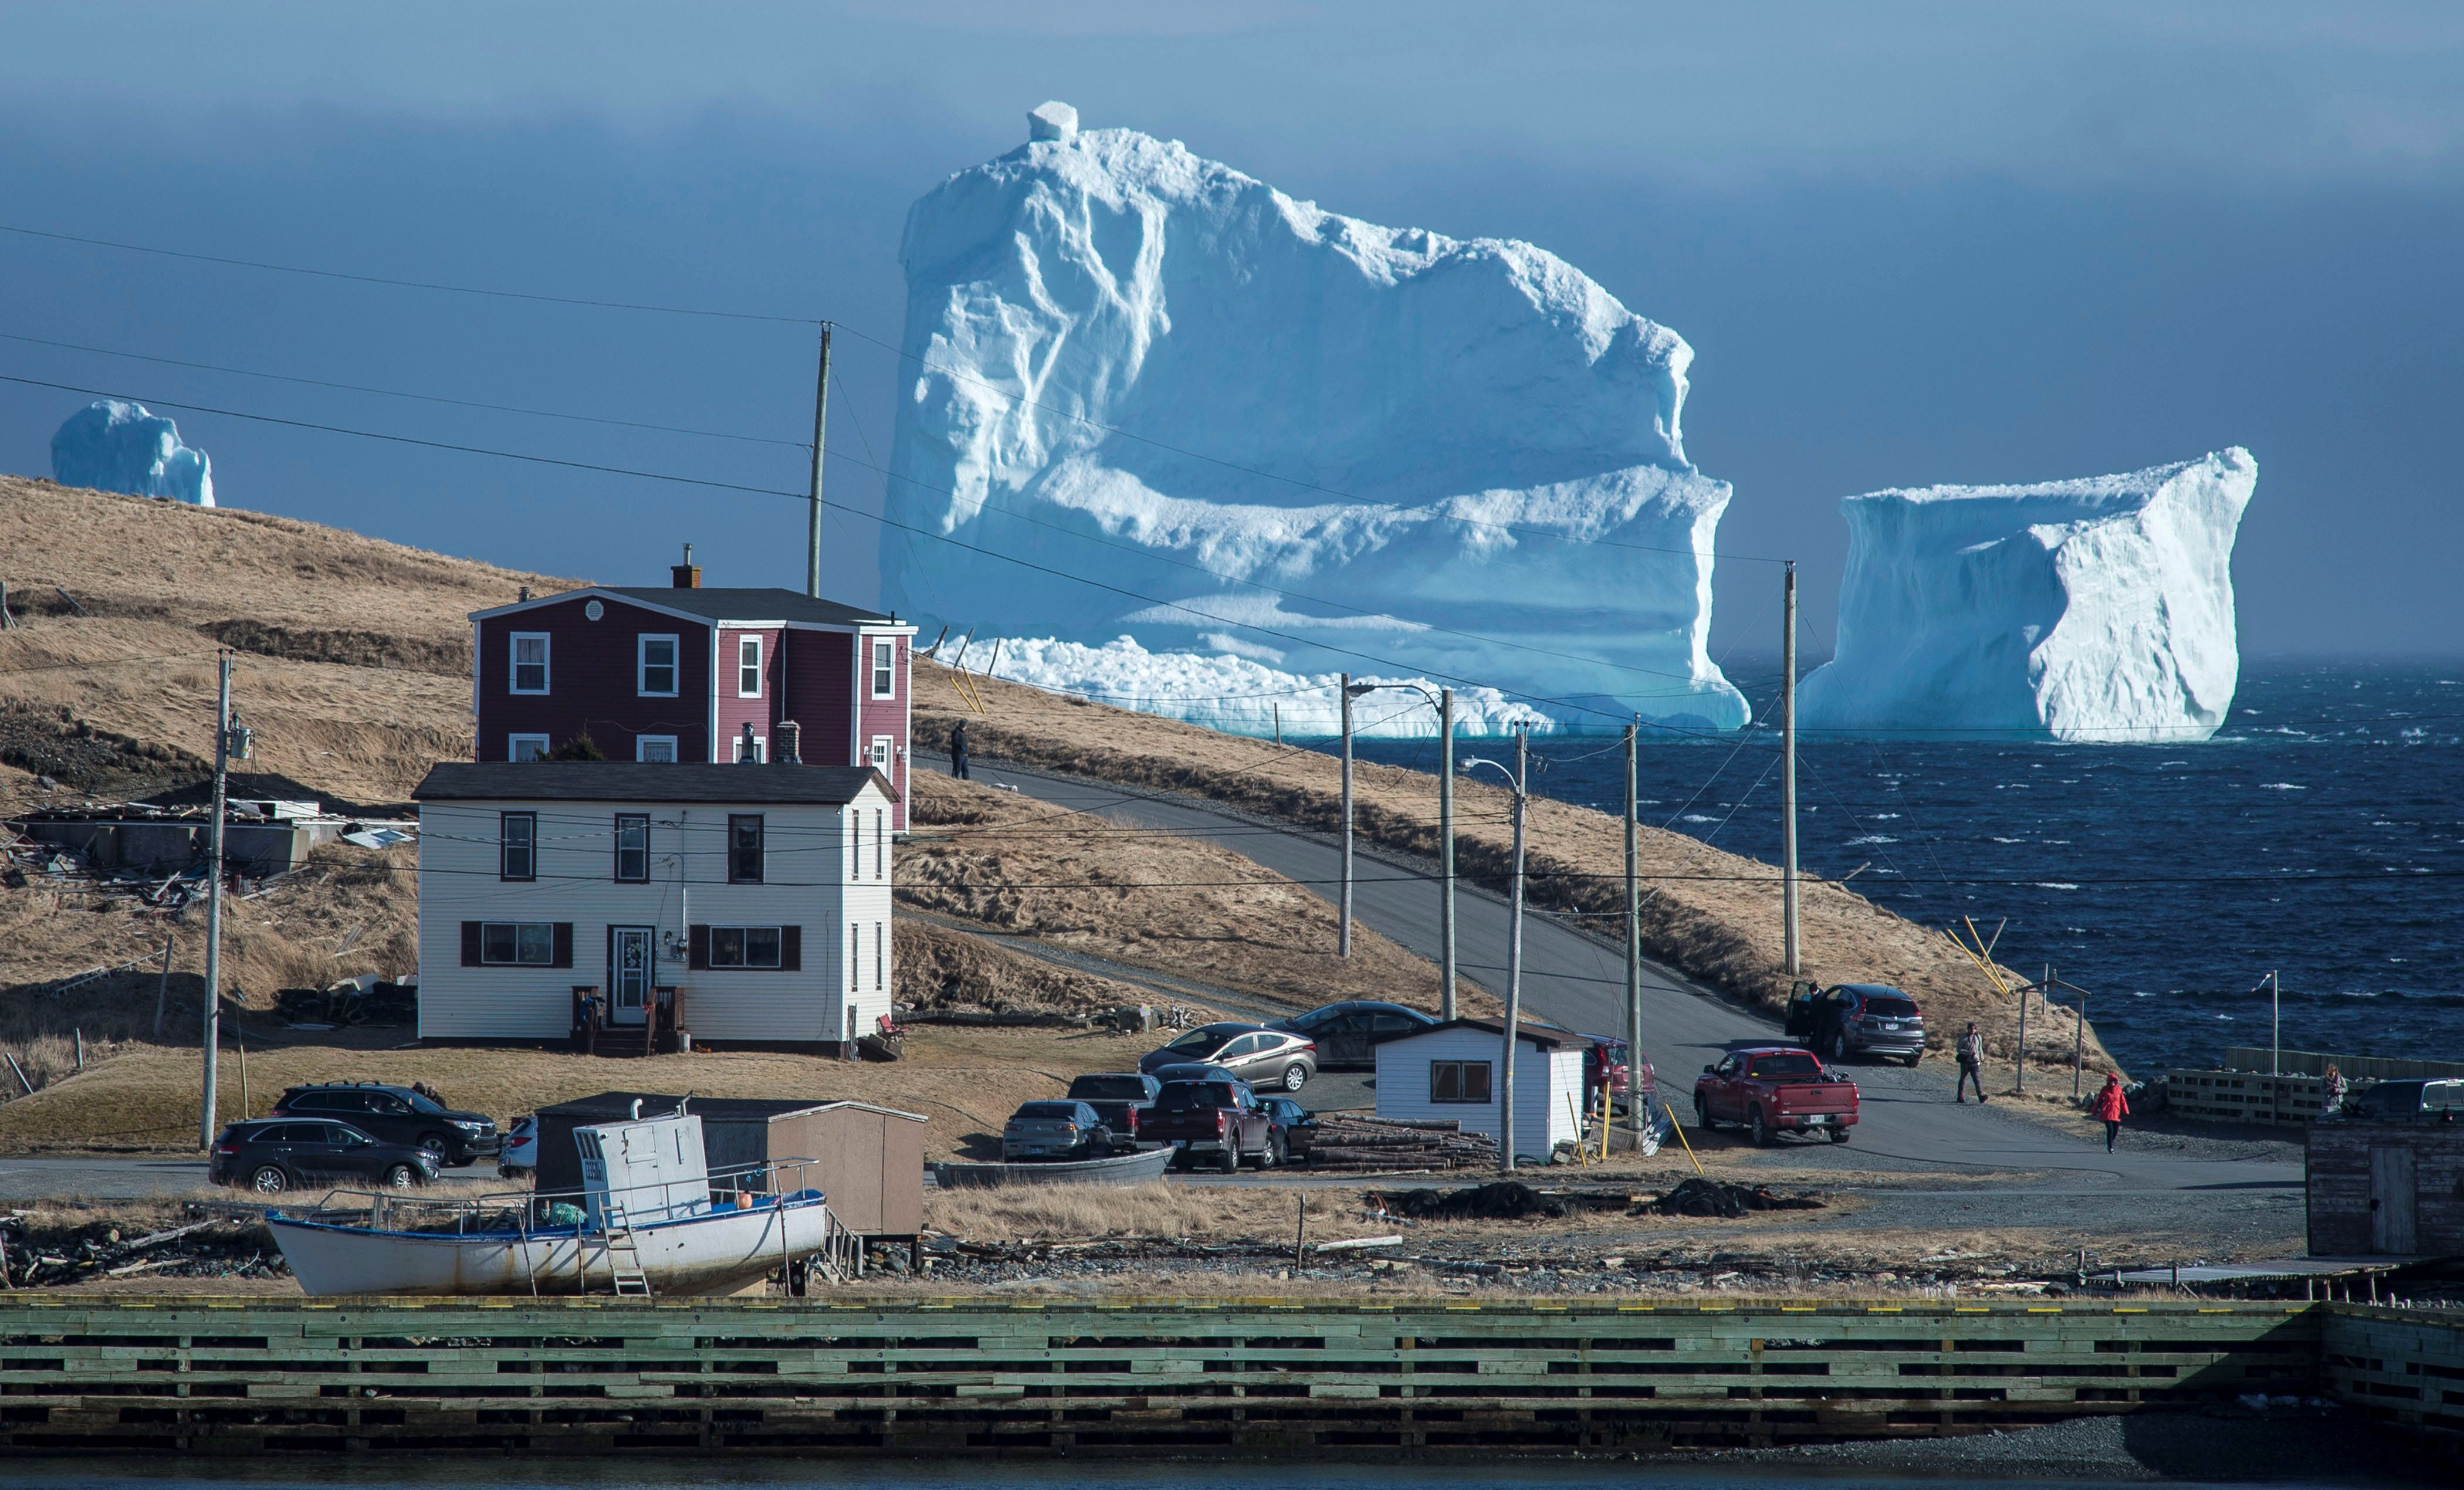 """Residents view the first iceberg of the season as it passes the South Shore, also known as """"Iceberg Alley"""", near Ferryland Newfoundland, Canada April 16, 2017. Picture taken April 16, 2017. REUTERS/Greg Locke  TPX IMAGES OF THE DAY"""